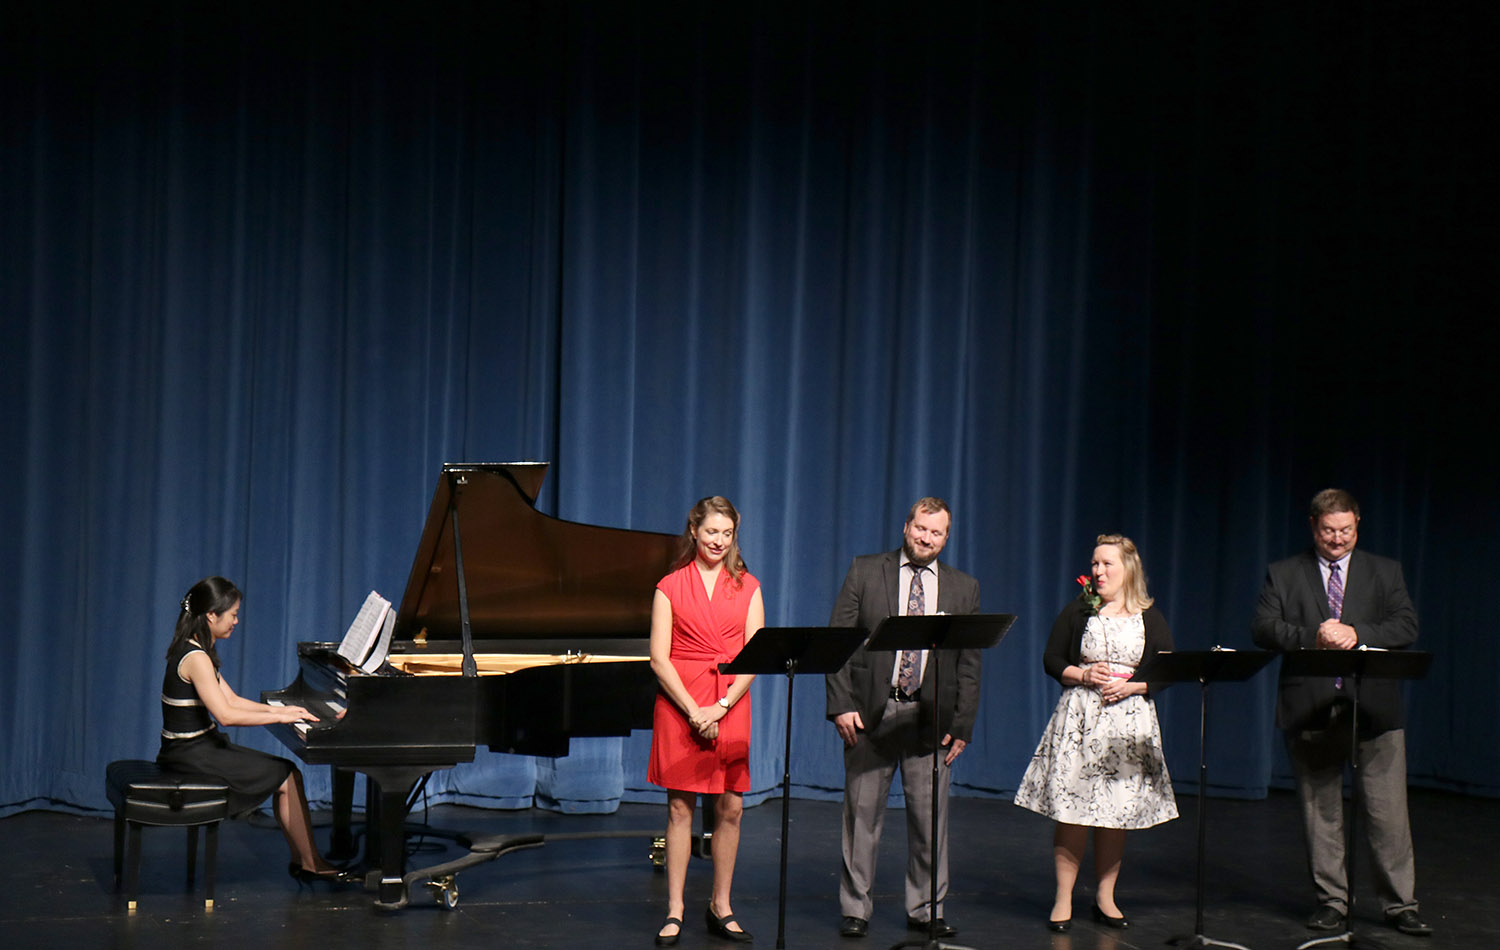 <strong>PHOTO BY Dedric Roundtree <strong><br>Members of Kirkwoods Arts and Humanities department perform during the Faculty Recital held in Ballantyne Auditoruim on Sept. 12. Left to Right are Dr. Kim Seong-Silkim, Mary Jane Cluassen, Dr. Benjamin Laur, Dr. Allison Holmes-Bendiyen, and Dr. Fred Kiser.